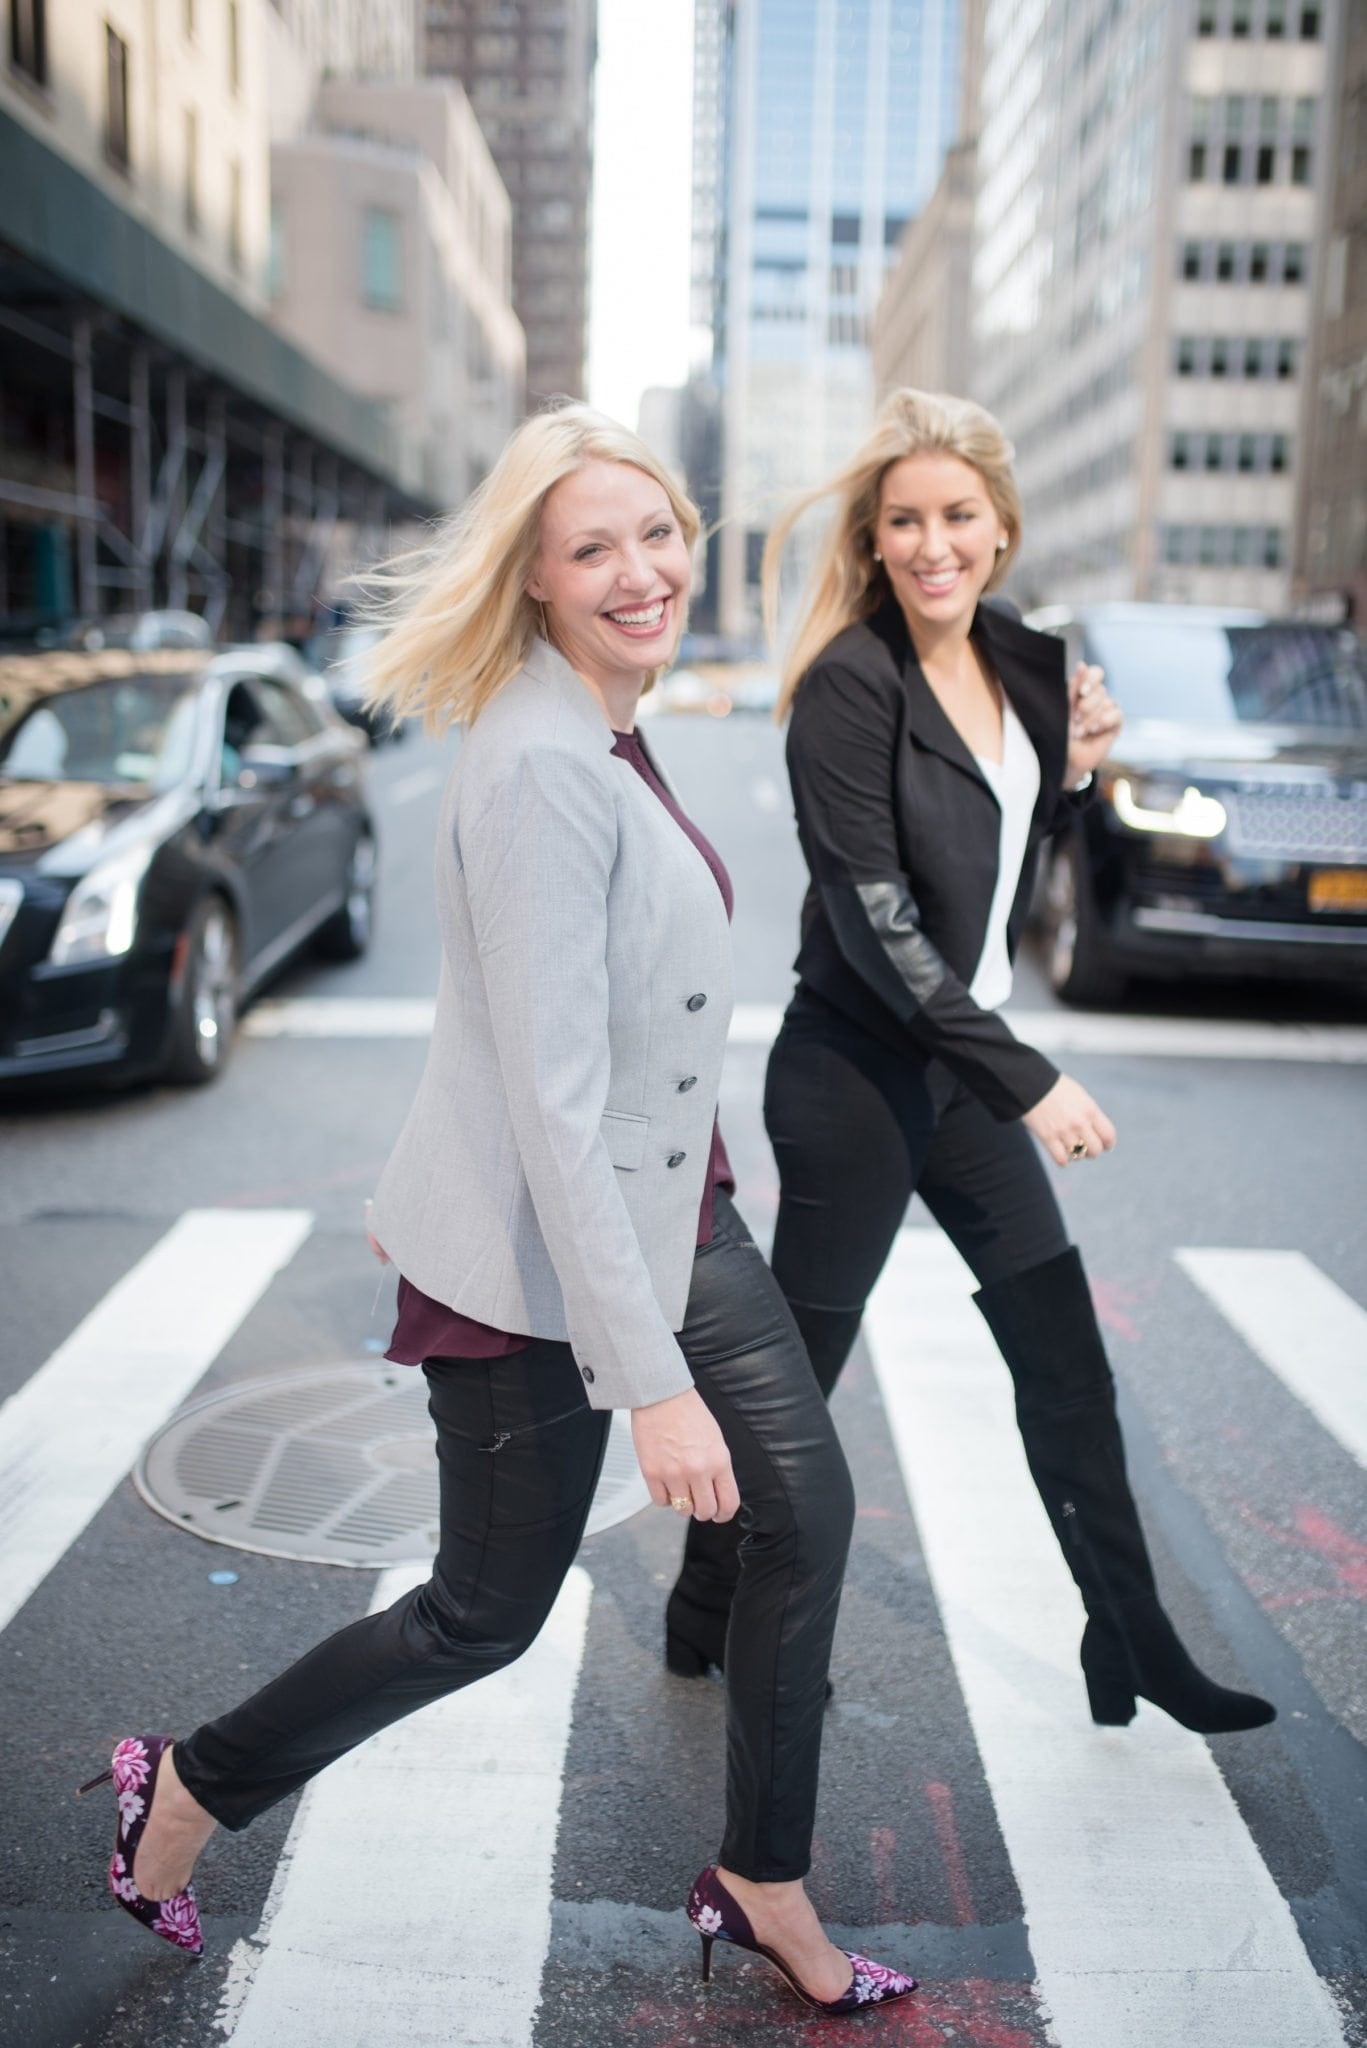 RewardStyle Like To Know It bloggers Jess Cathell and Kelly Page walking across the street in NYC with floral pumps and over the knee boots.